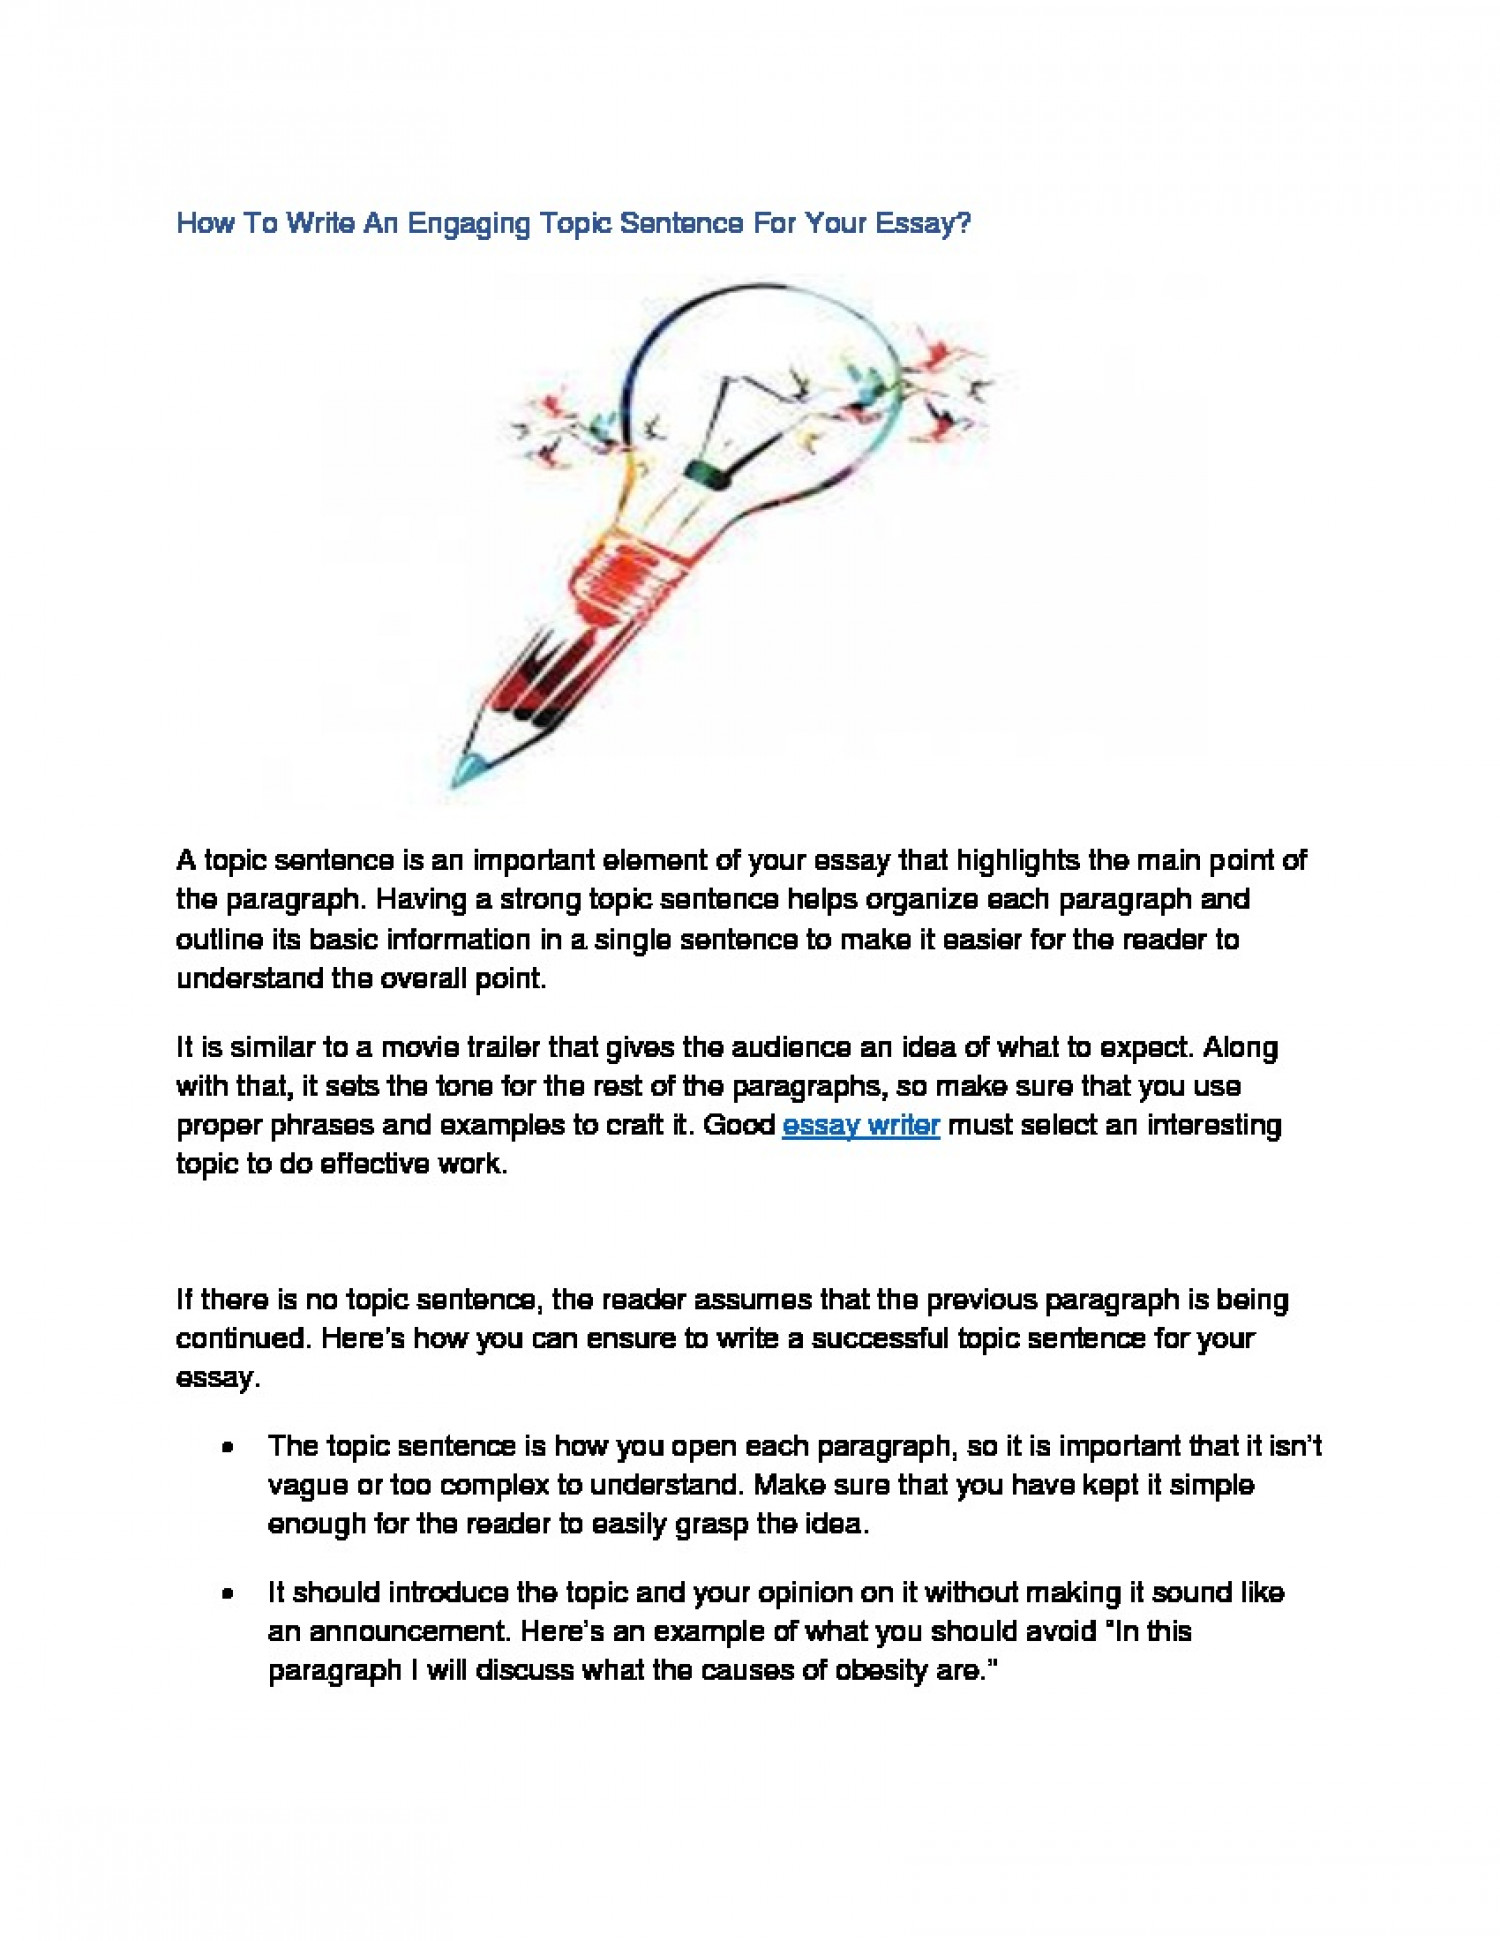 How To Write An Engaging Topic Sentence For Your Essay? Infographic